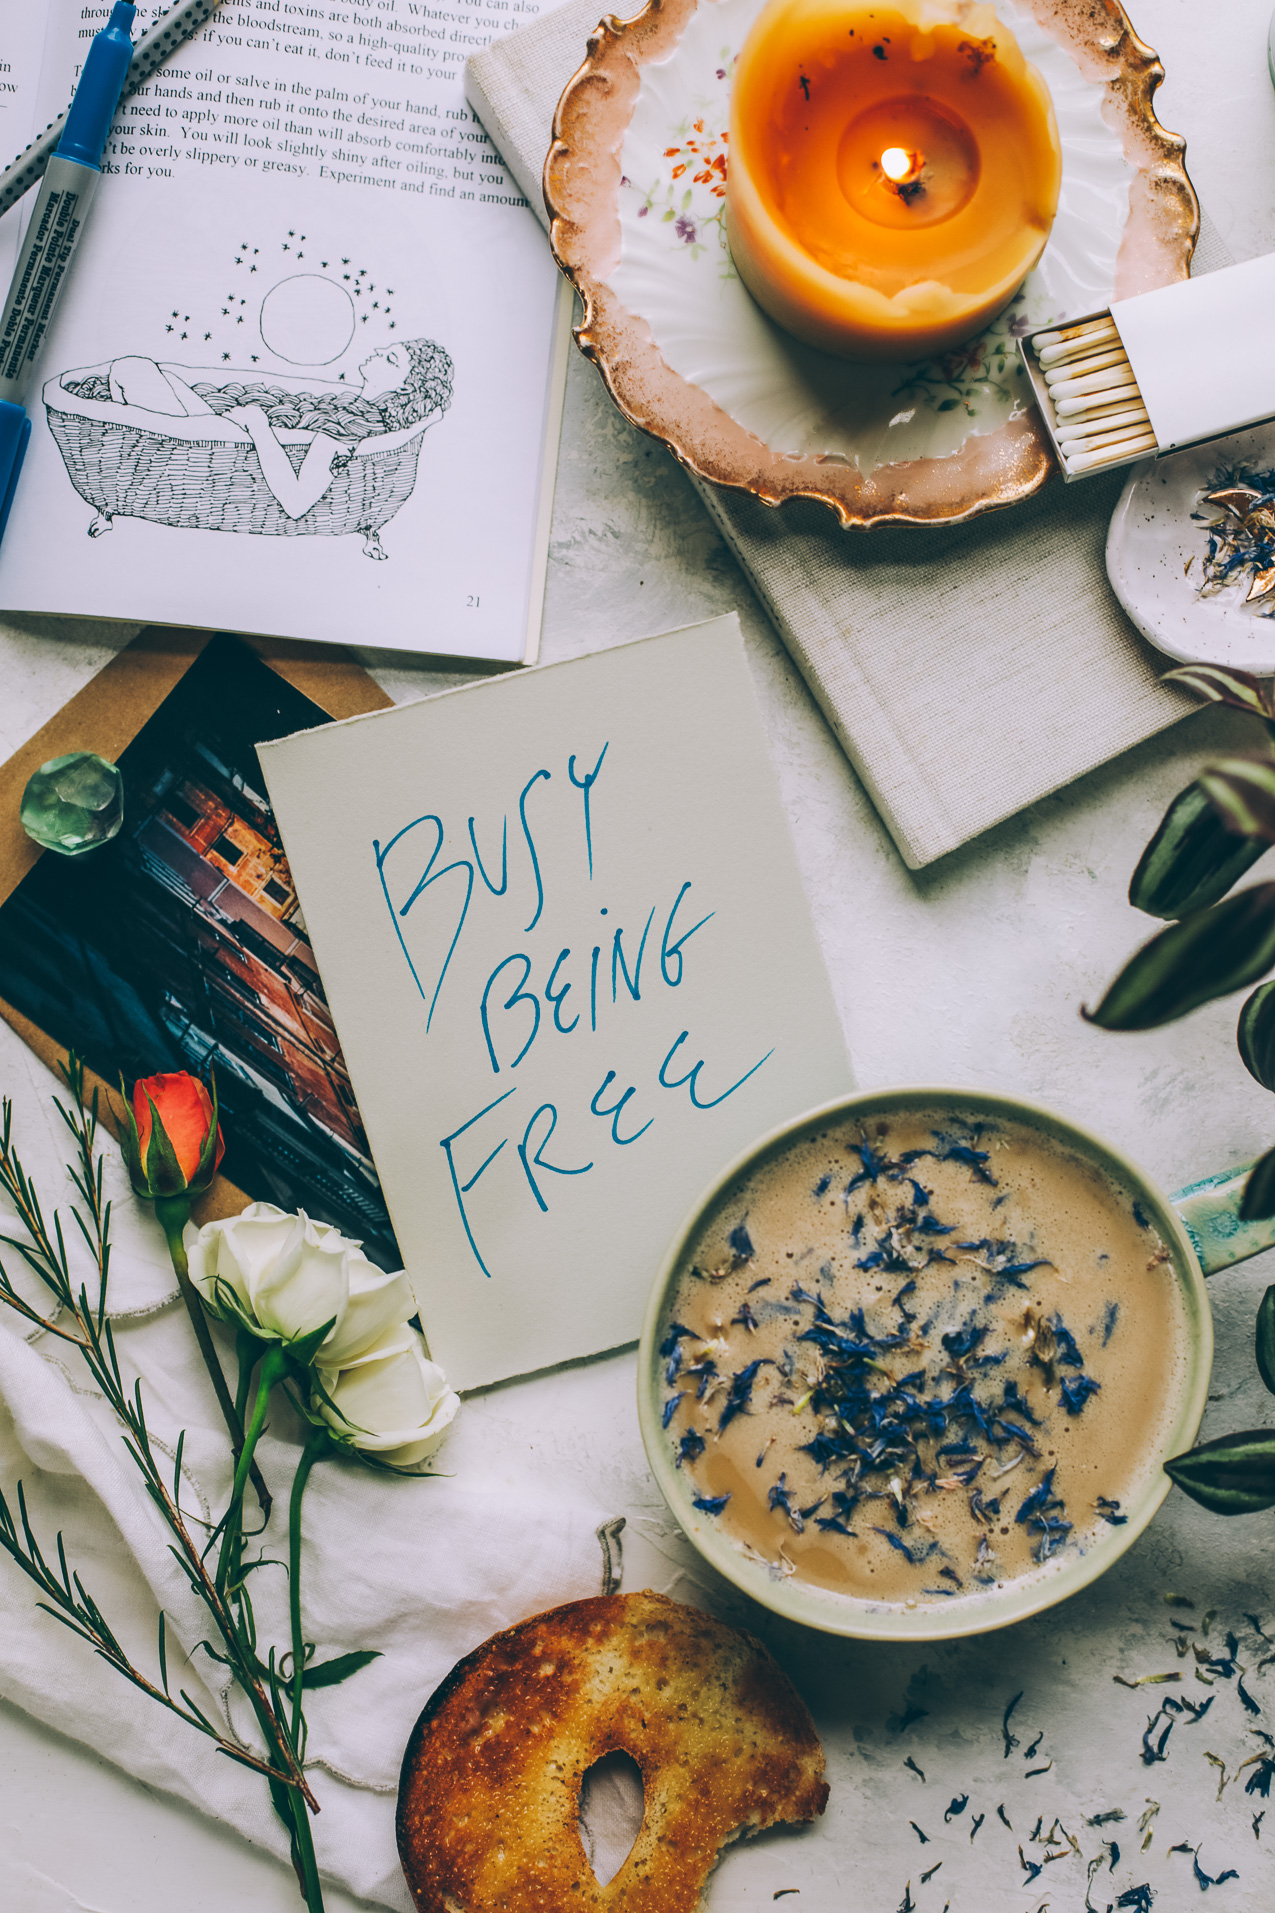 busy-being-free-2448.jpg